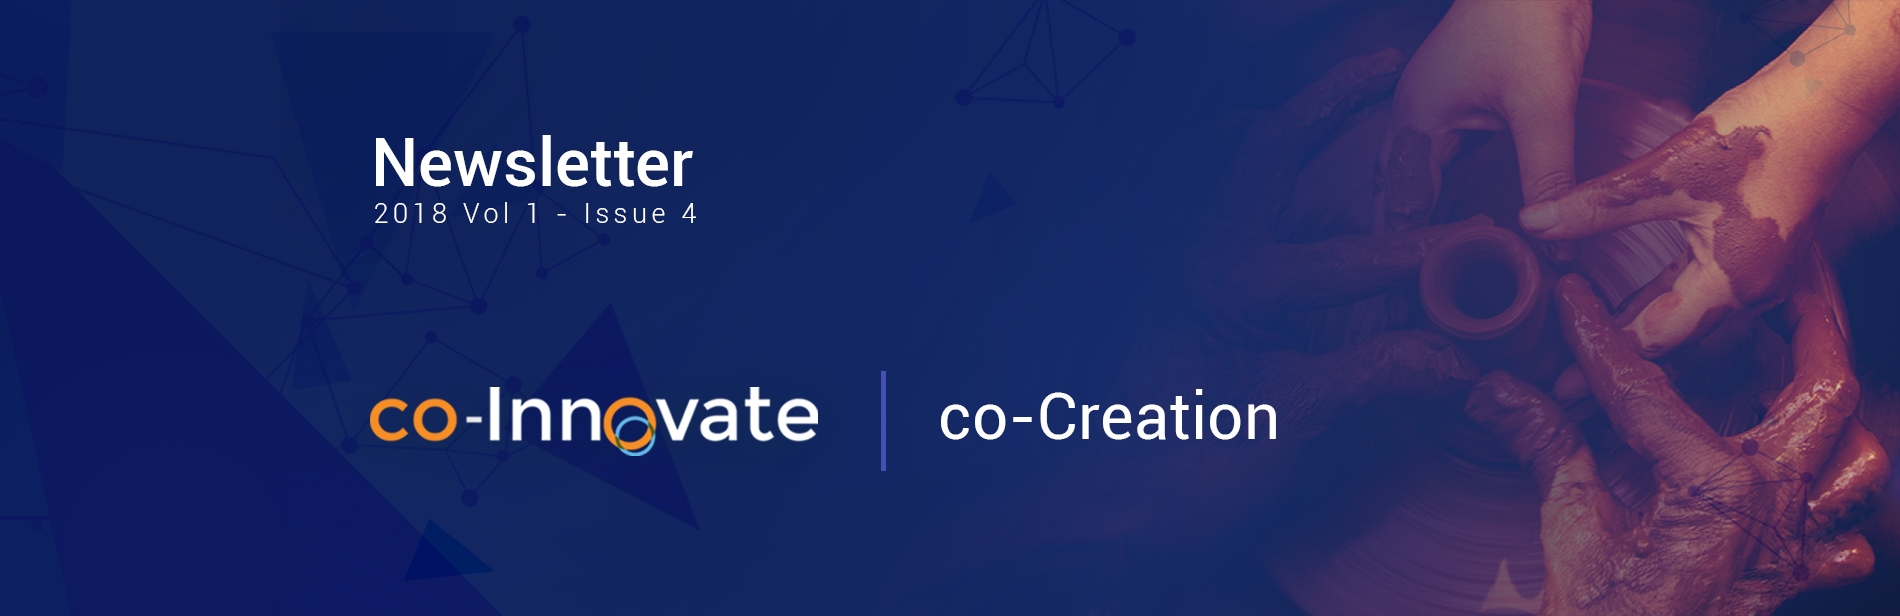 coMakeIT   co-Innovate Newsletter 2018 Vol 1 – Issue 4